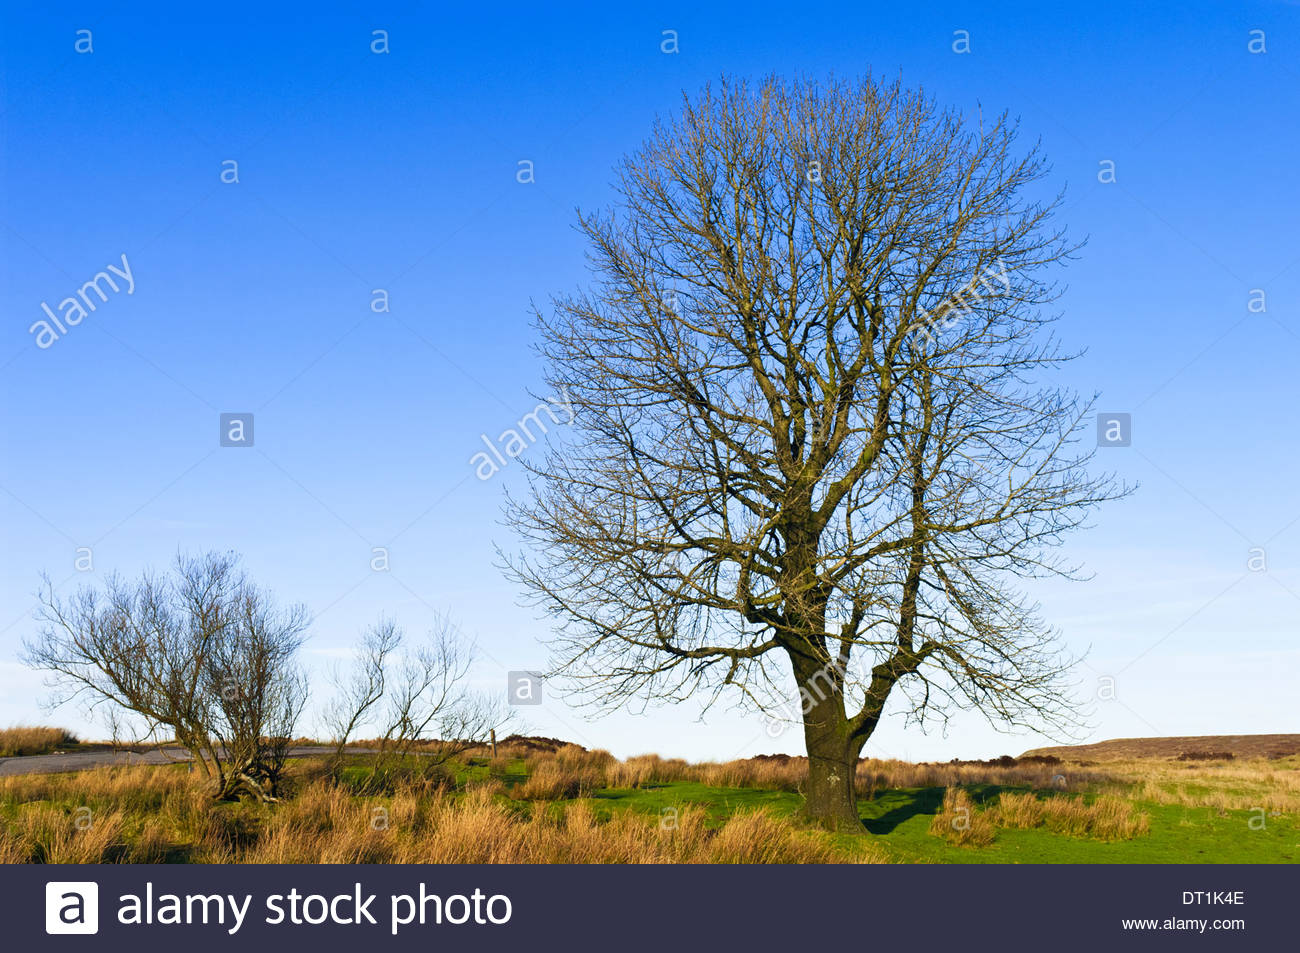 Ash tree in winter, Monmouthshire, Wales, UK - Stock Image